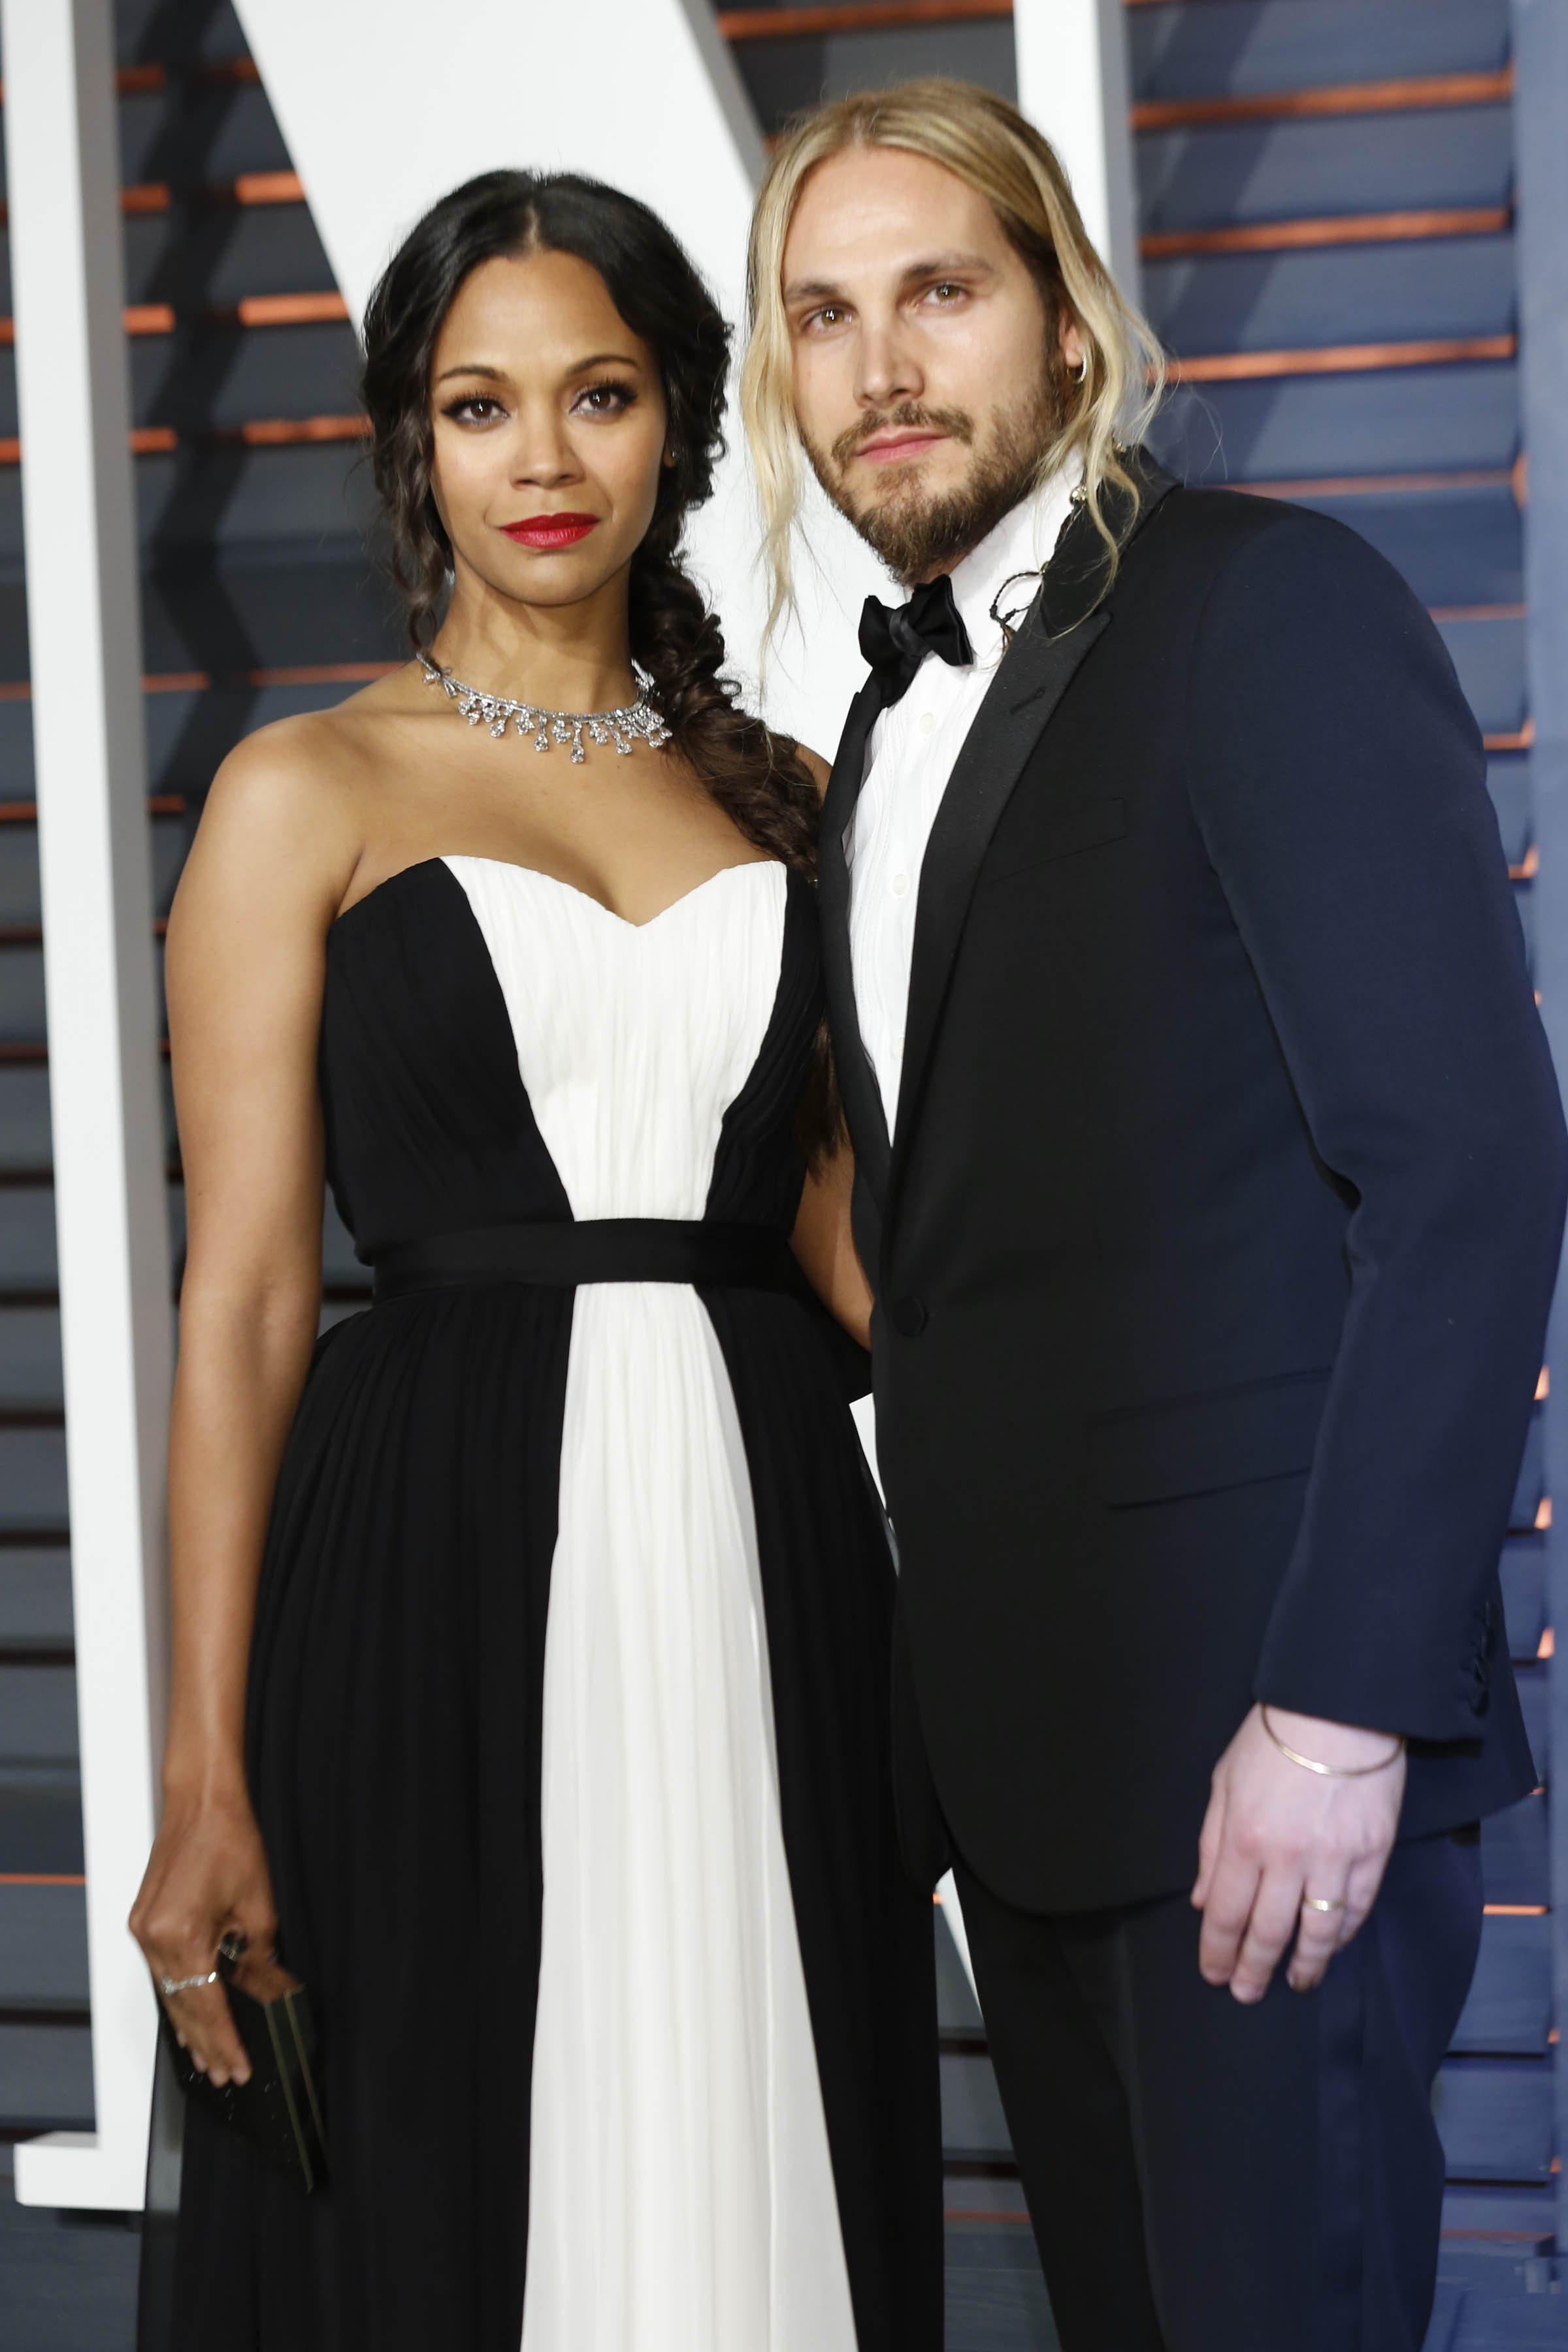 Zoe Saldana, Marco Perego at the Vanity Fair Oscar Party on February 22, 2015. | Photo: Shutterstock